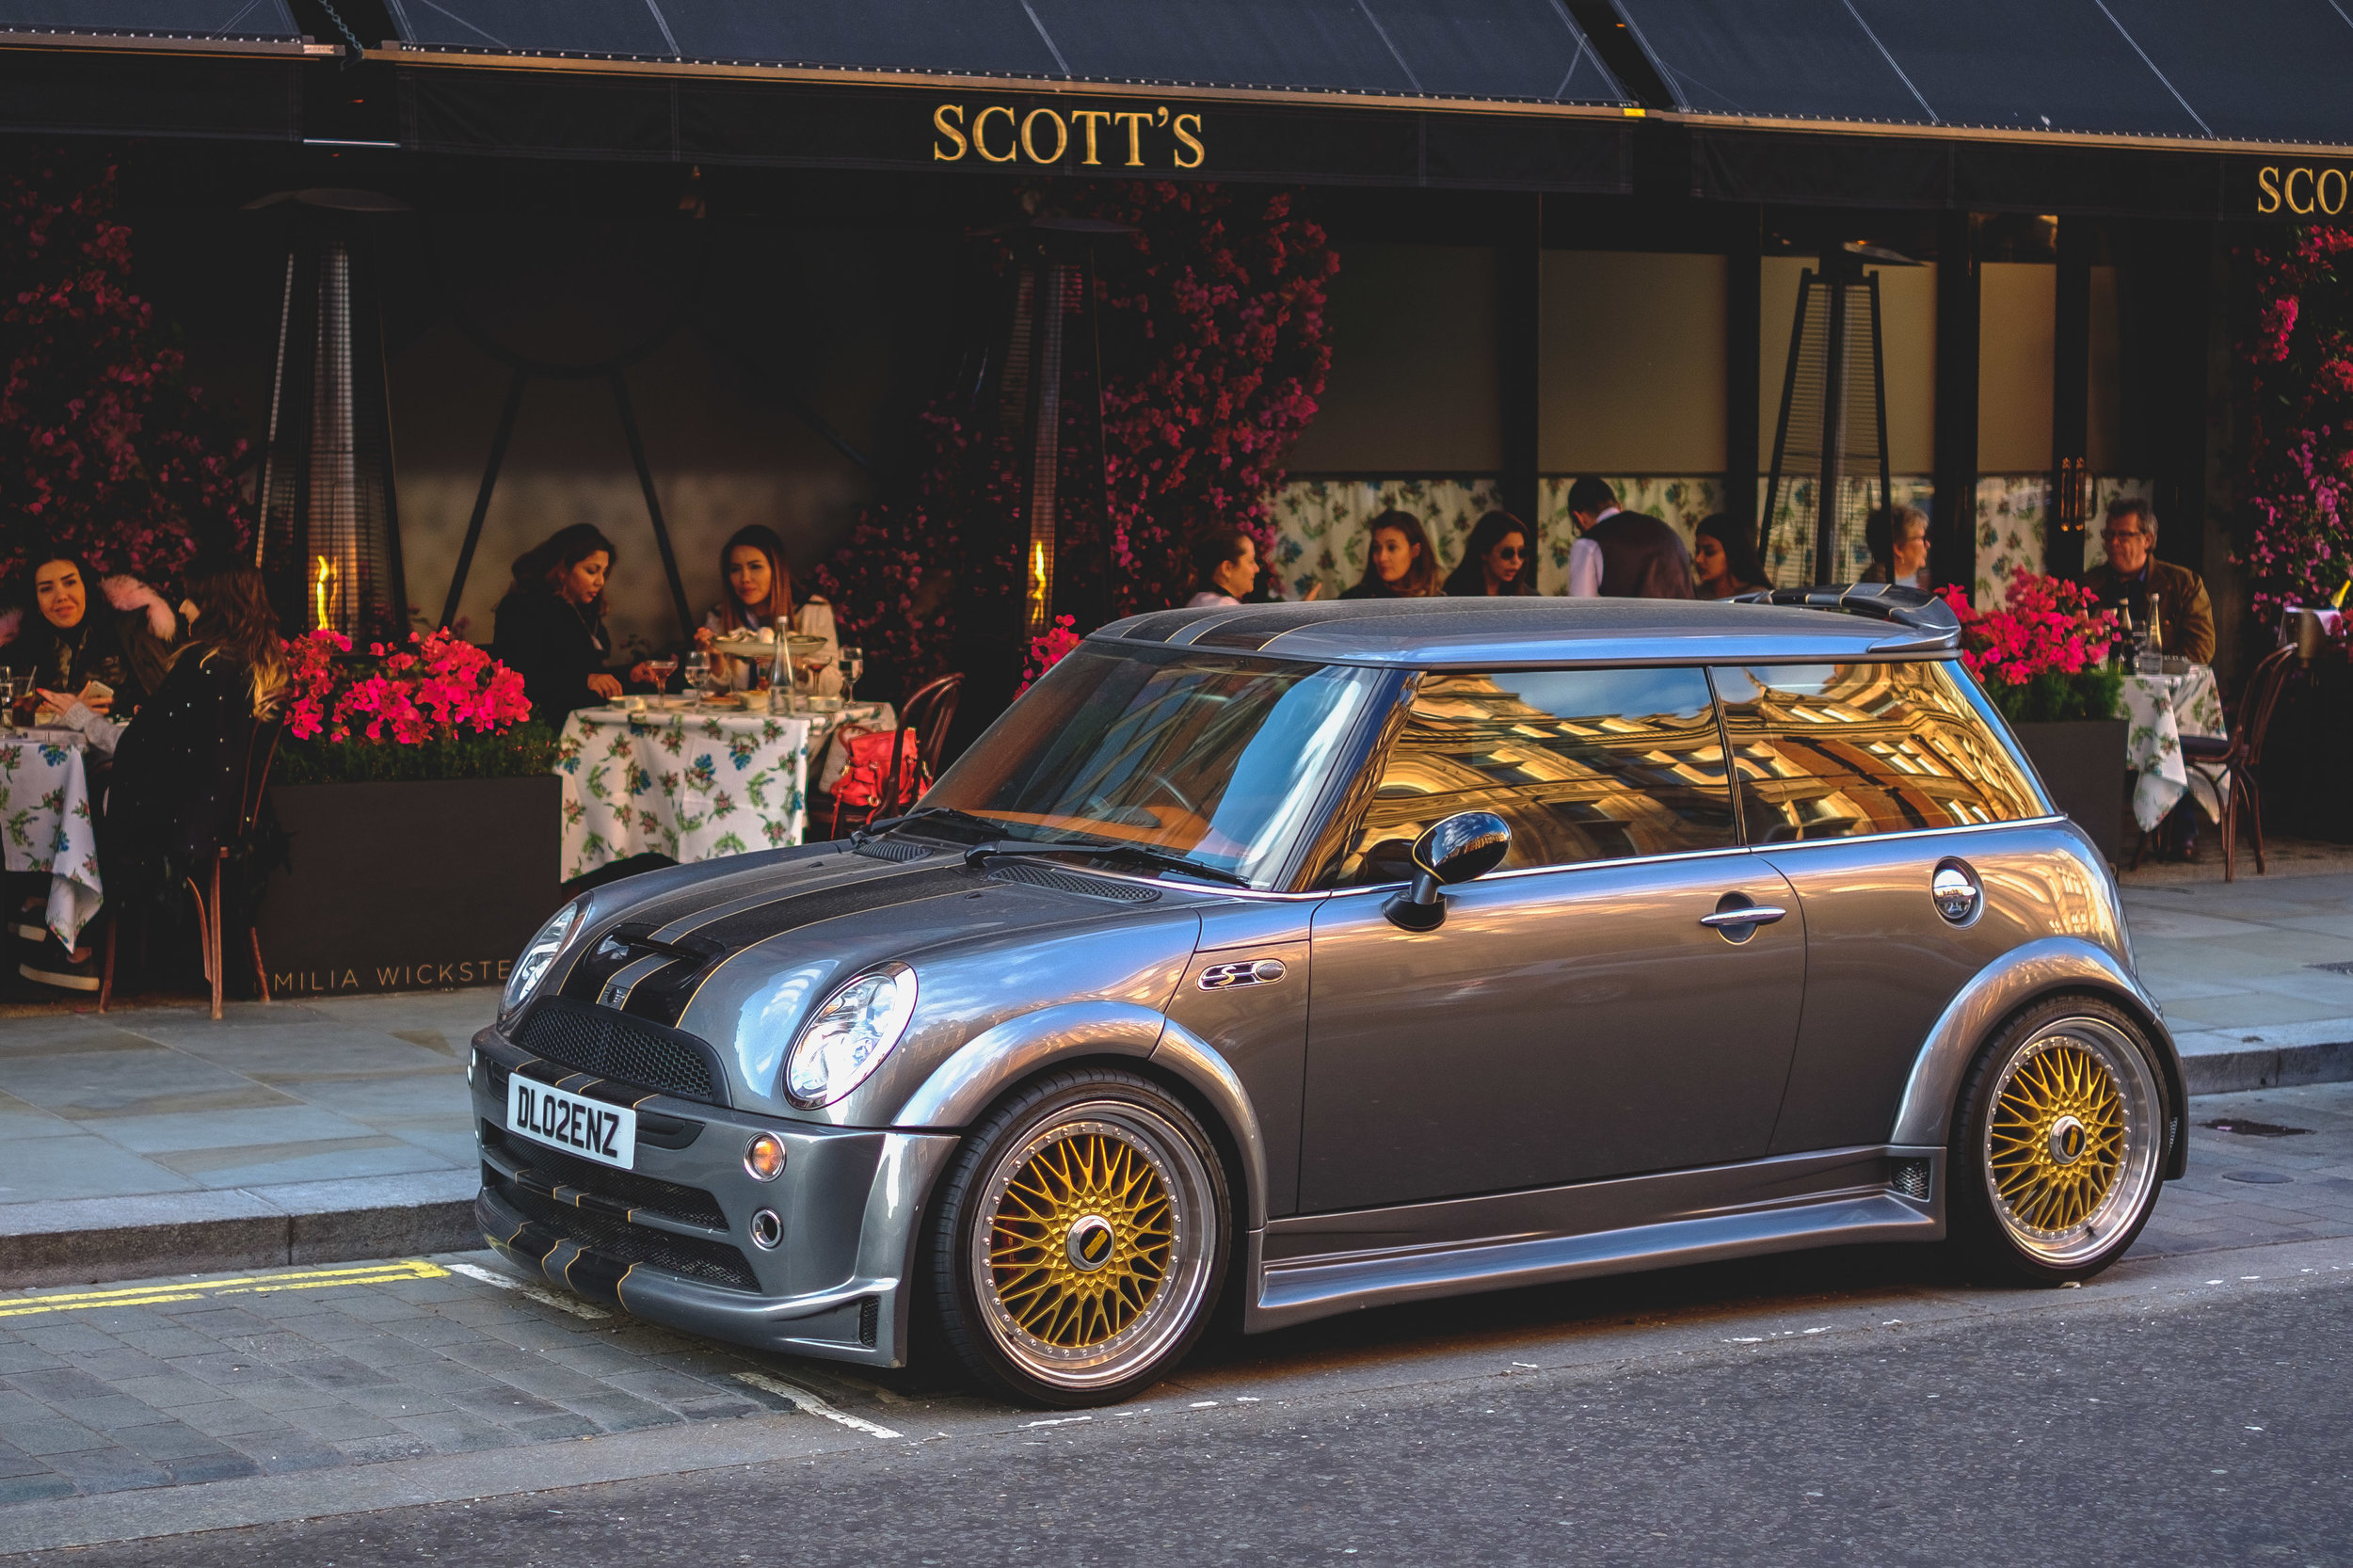 Pimped up Mini Cooper